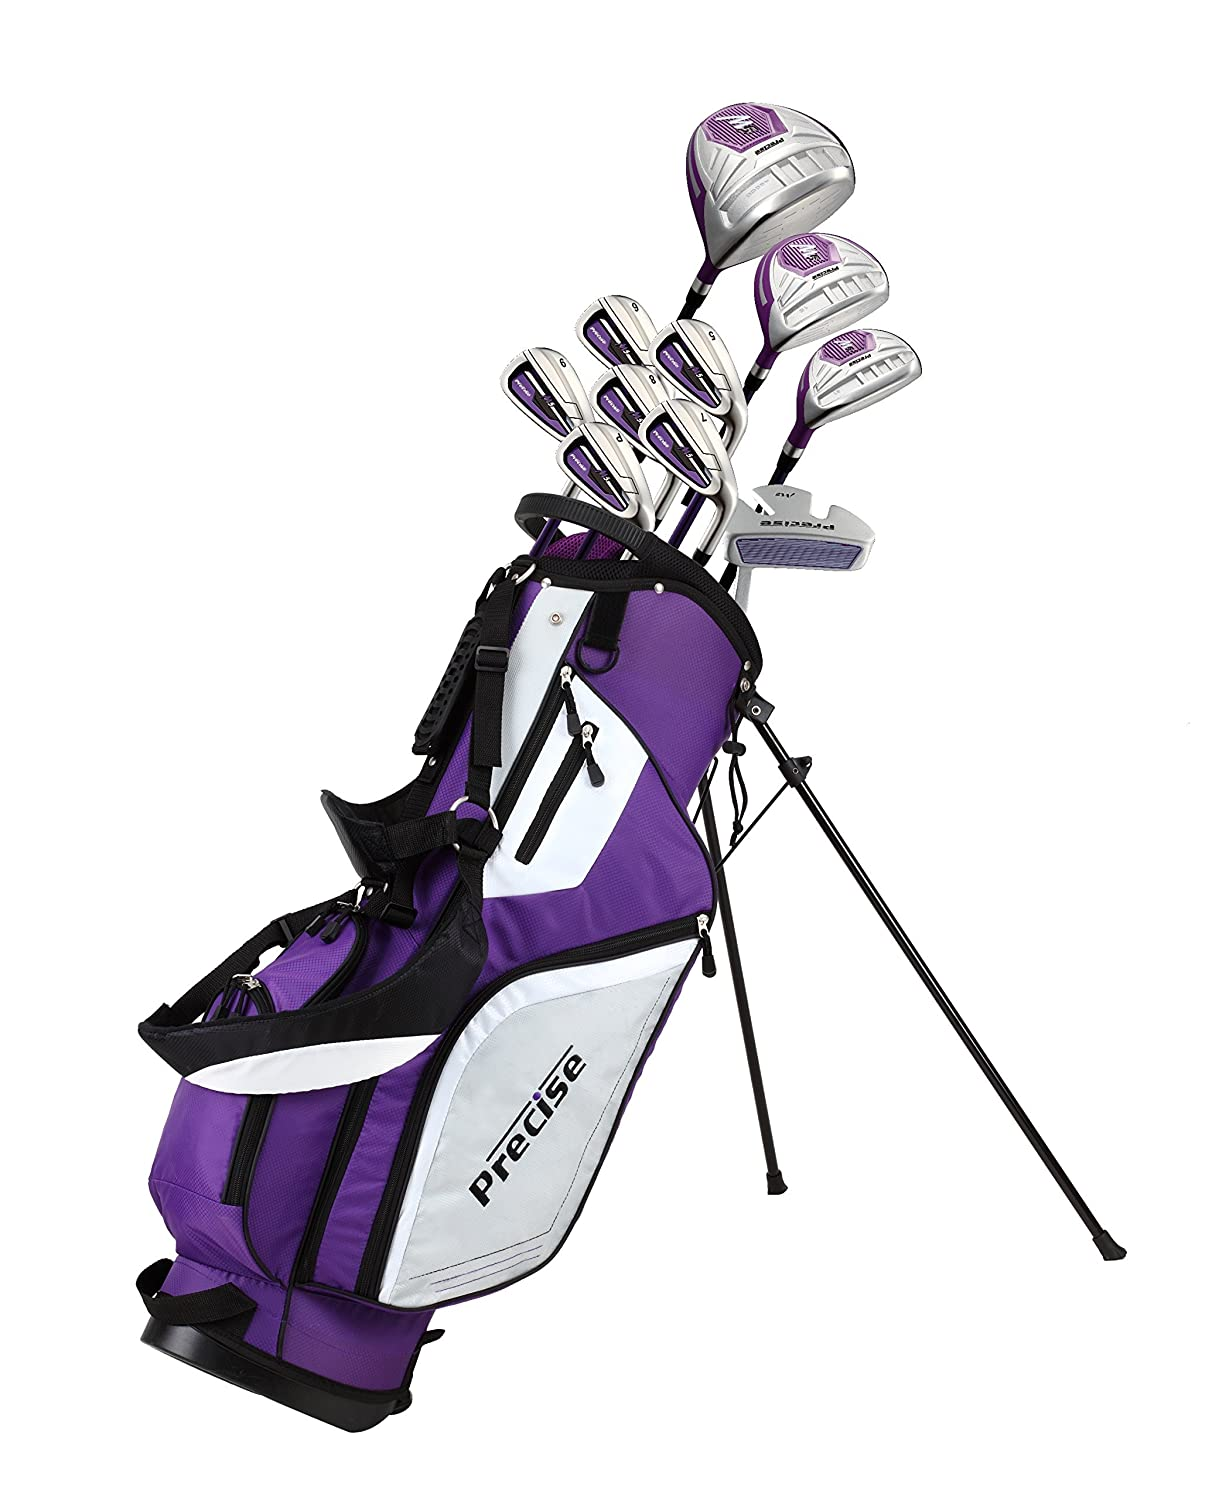 Precise NX460 Ladies Womens Complete Golf Clubs Set Includes Driver, Fairway, Hybrid, 4 Irons, Putter, Bag, 3 H C s – 2 Sizes – Regular and Petite Size